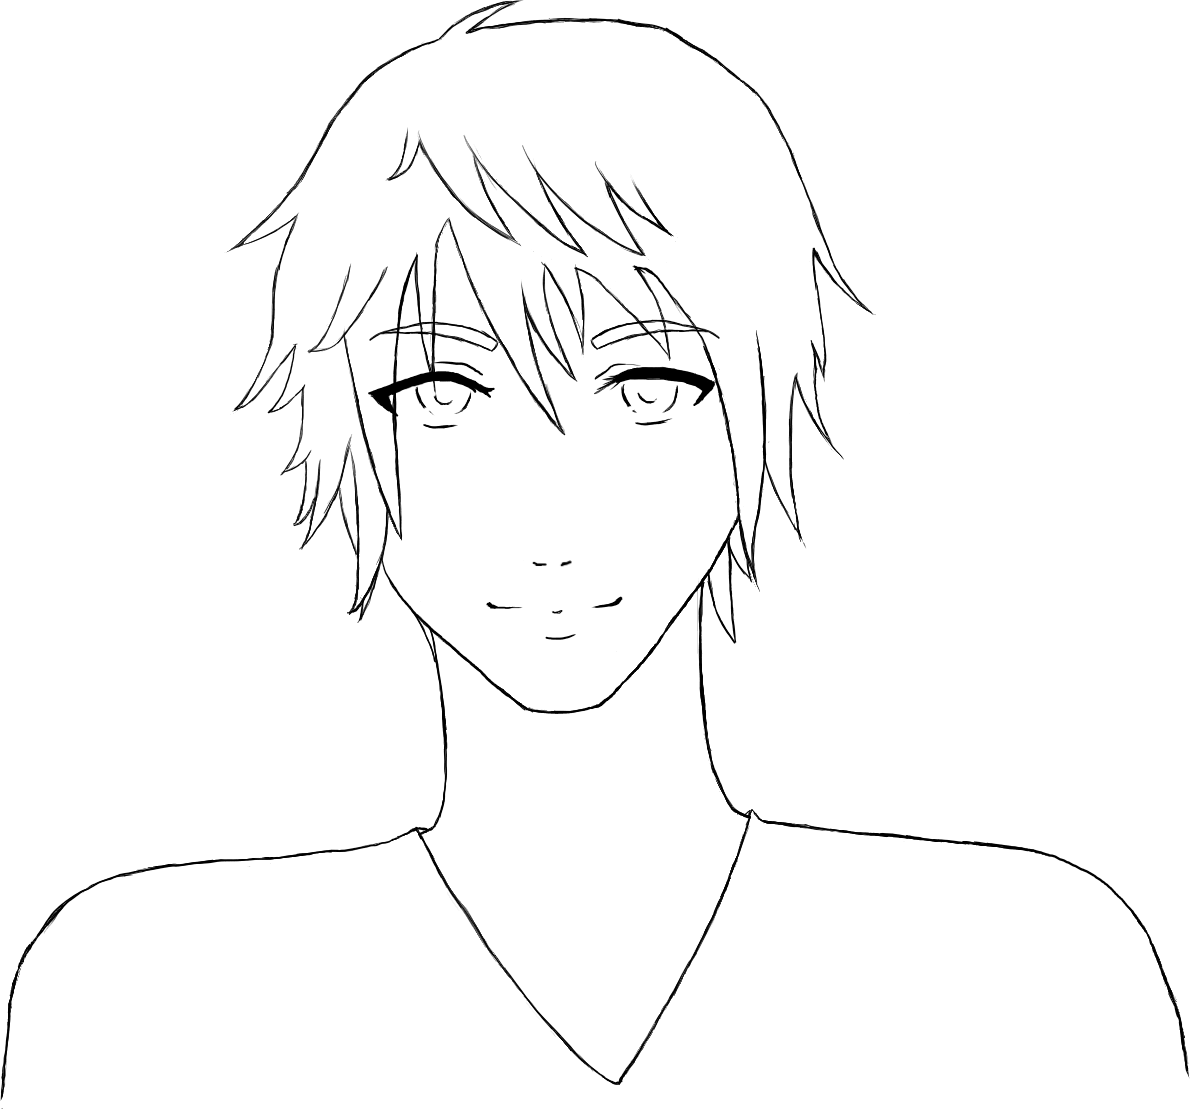 anime nose drawing at getdrawings com free for personal use anime